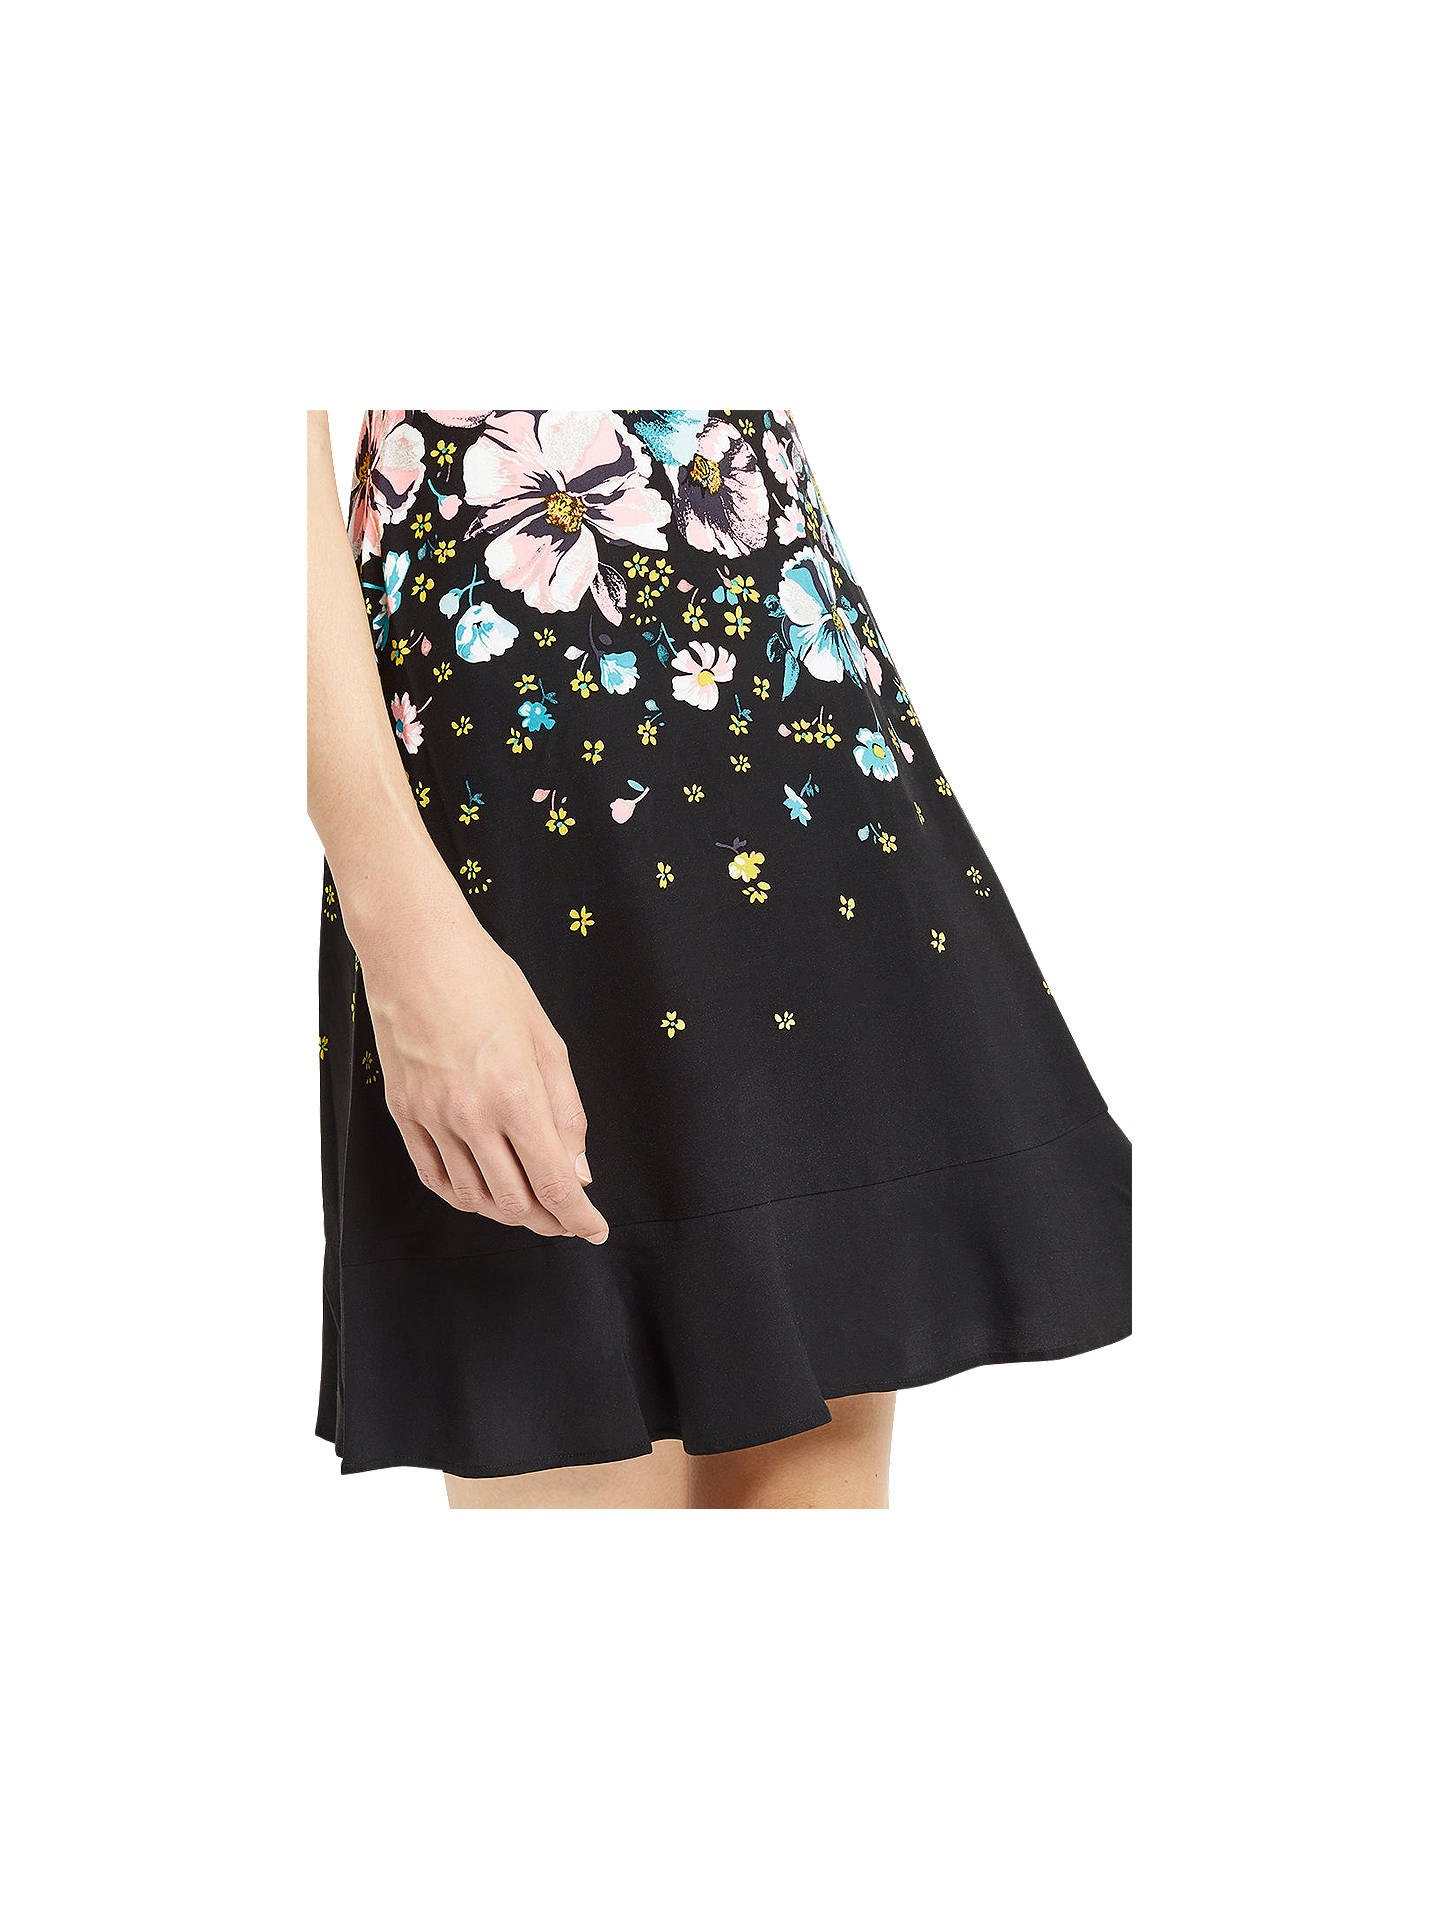 BuyOasis Rosetti Skater Dress, Multi/Black, 6 Online at johnlewis.com